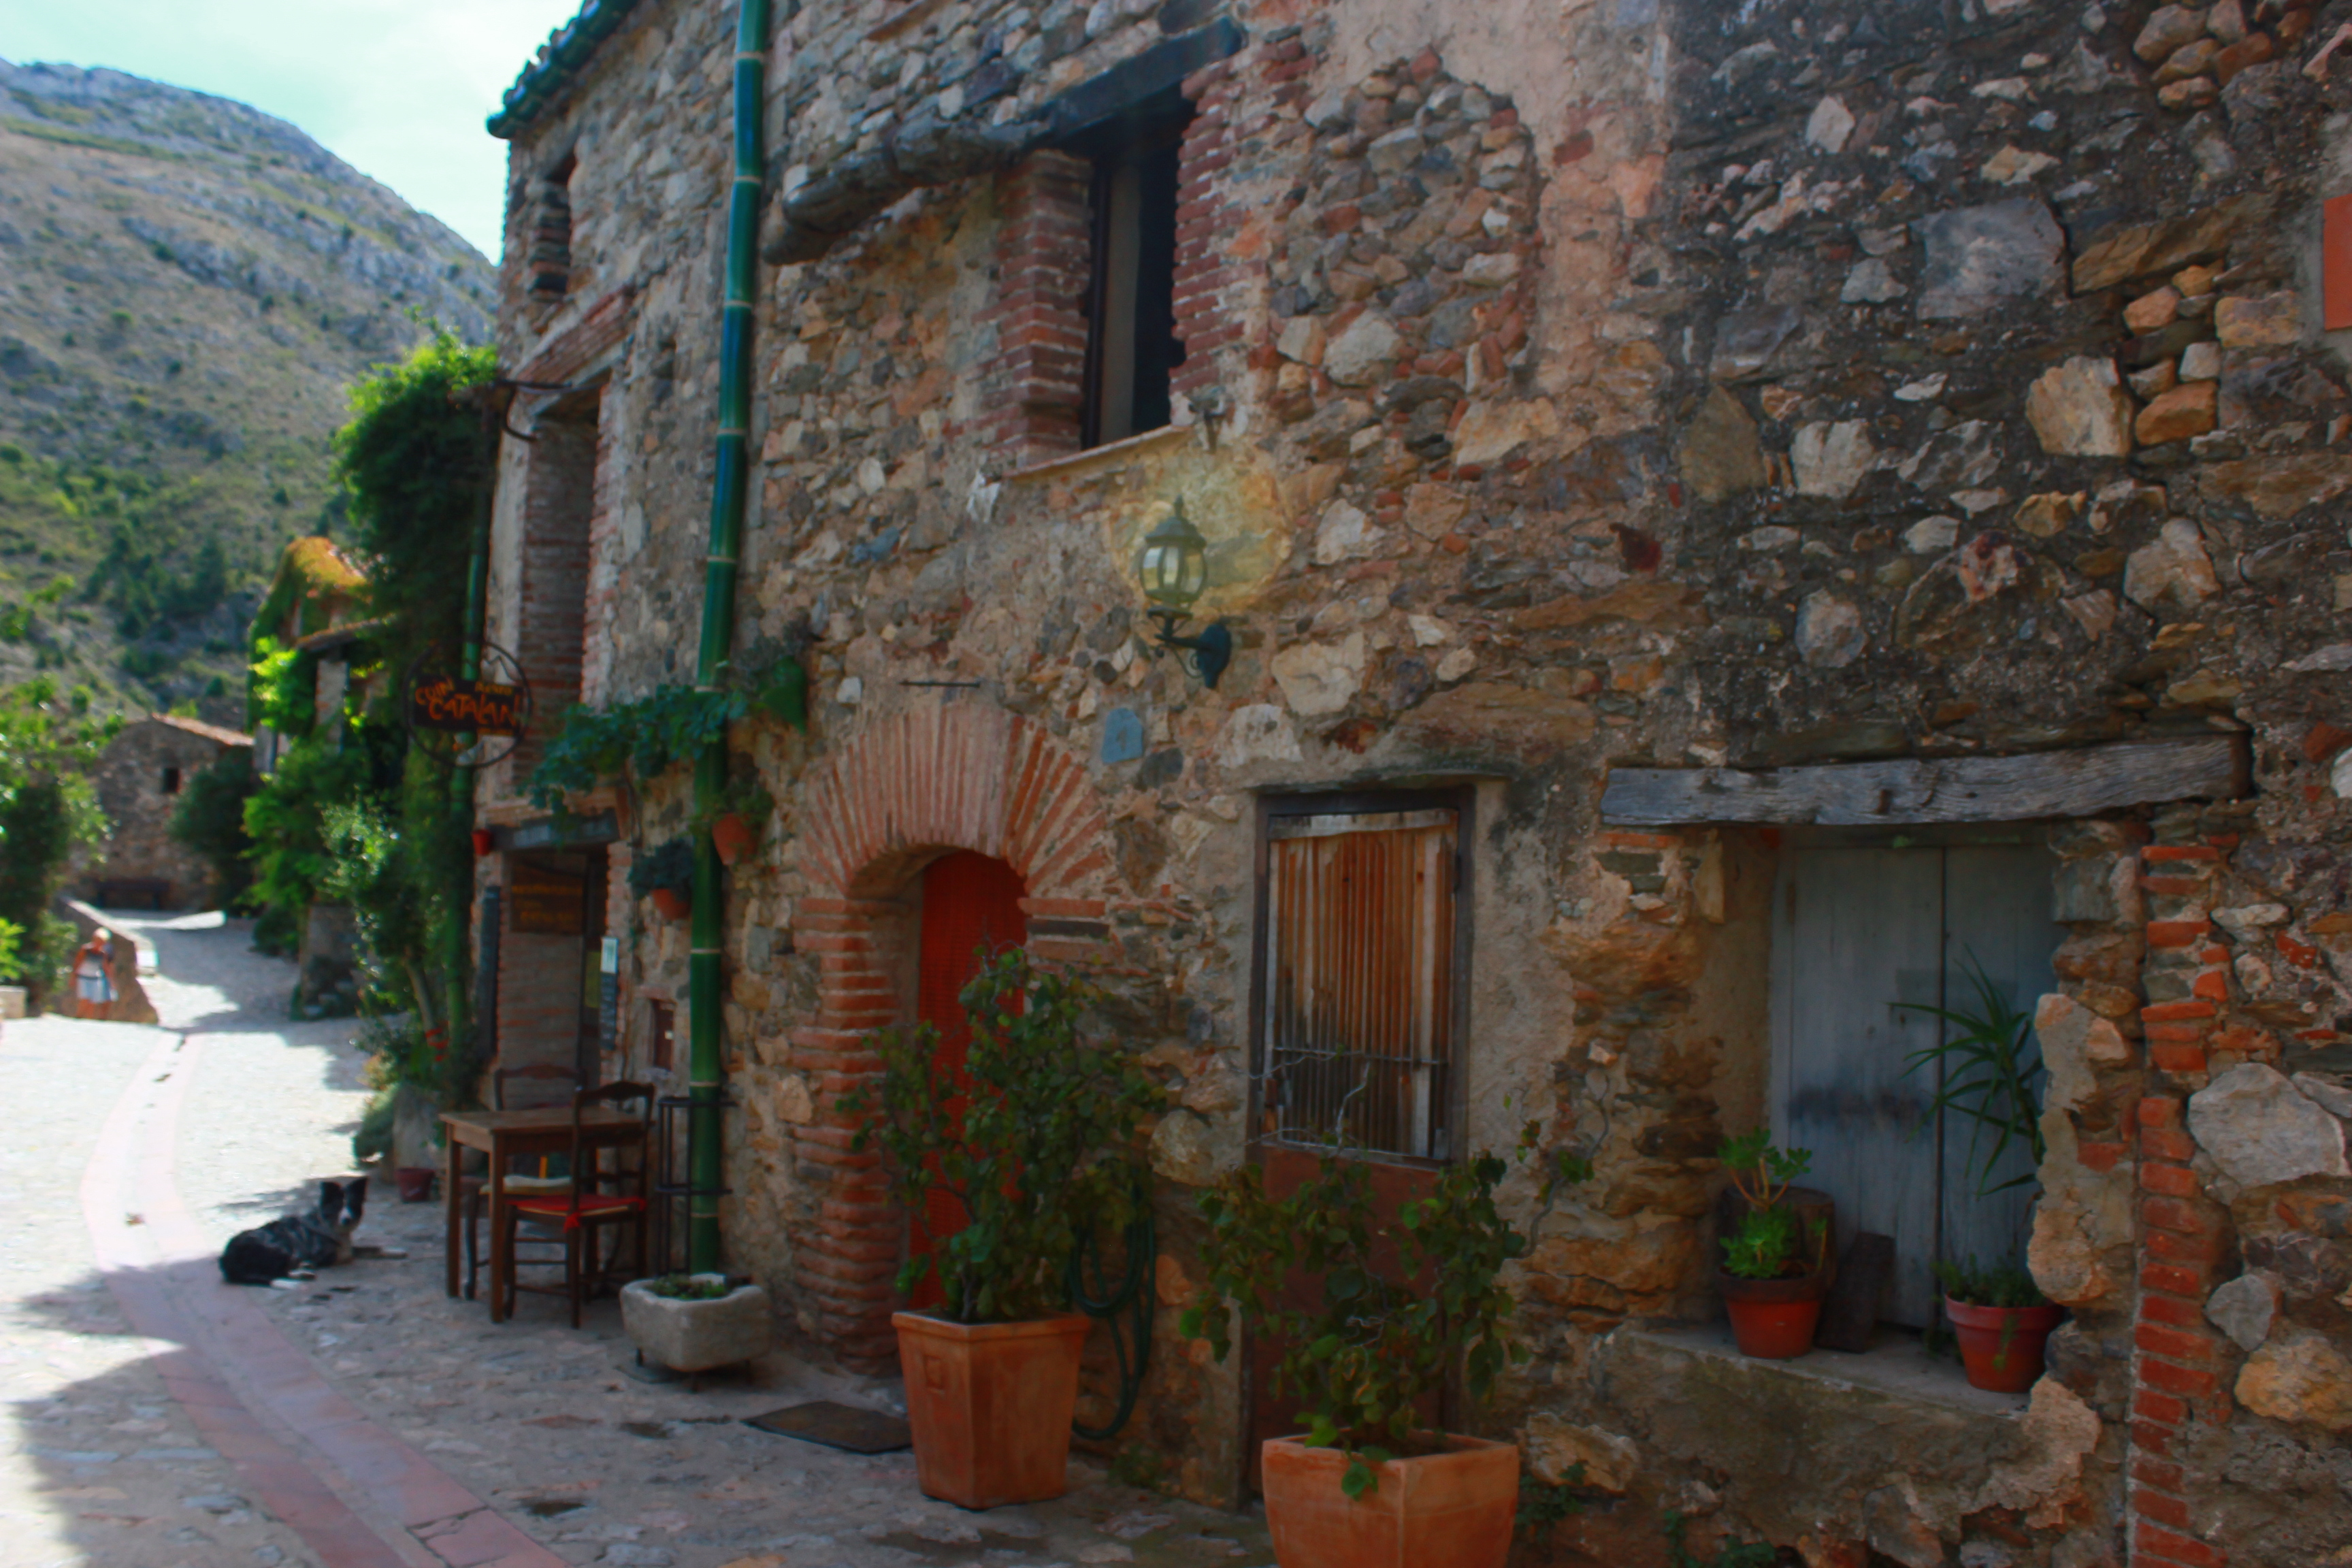 Castelnou_(66),_un_des_plus_beaux_village_de_France32.jpg